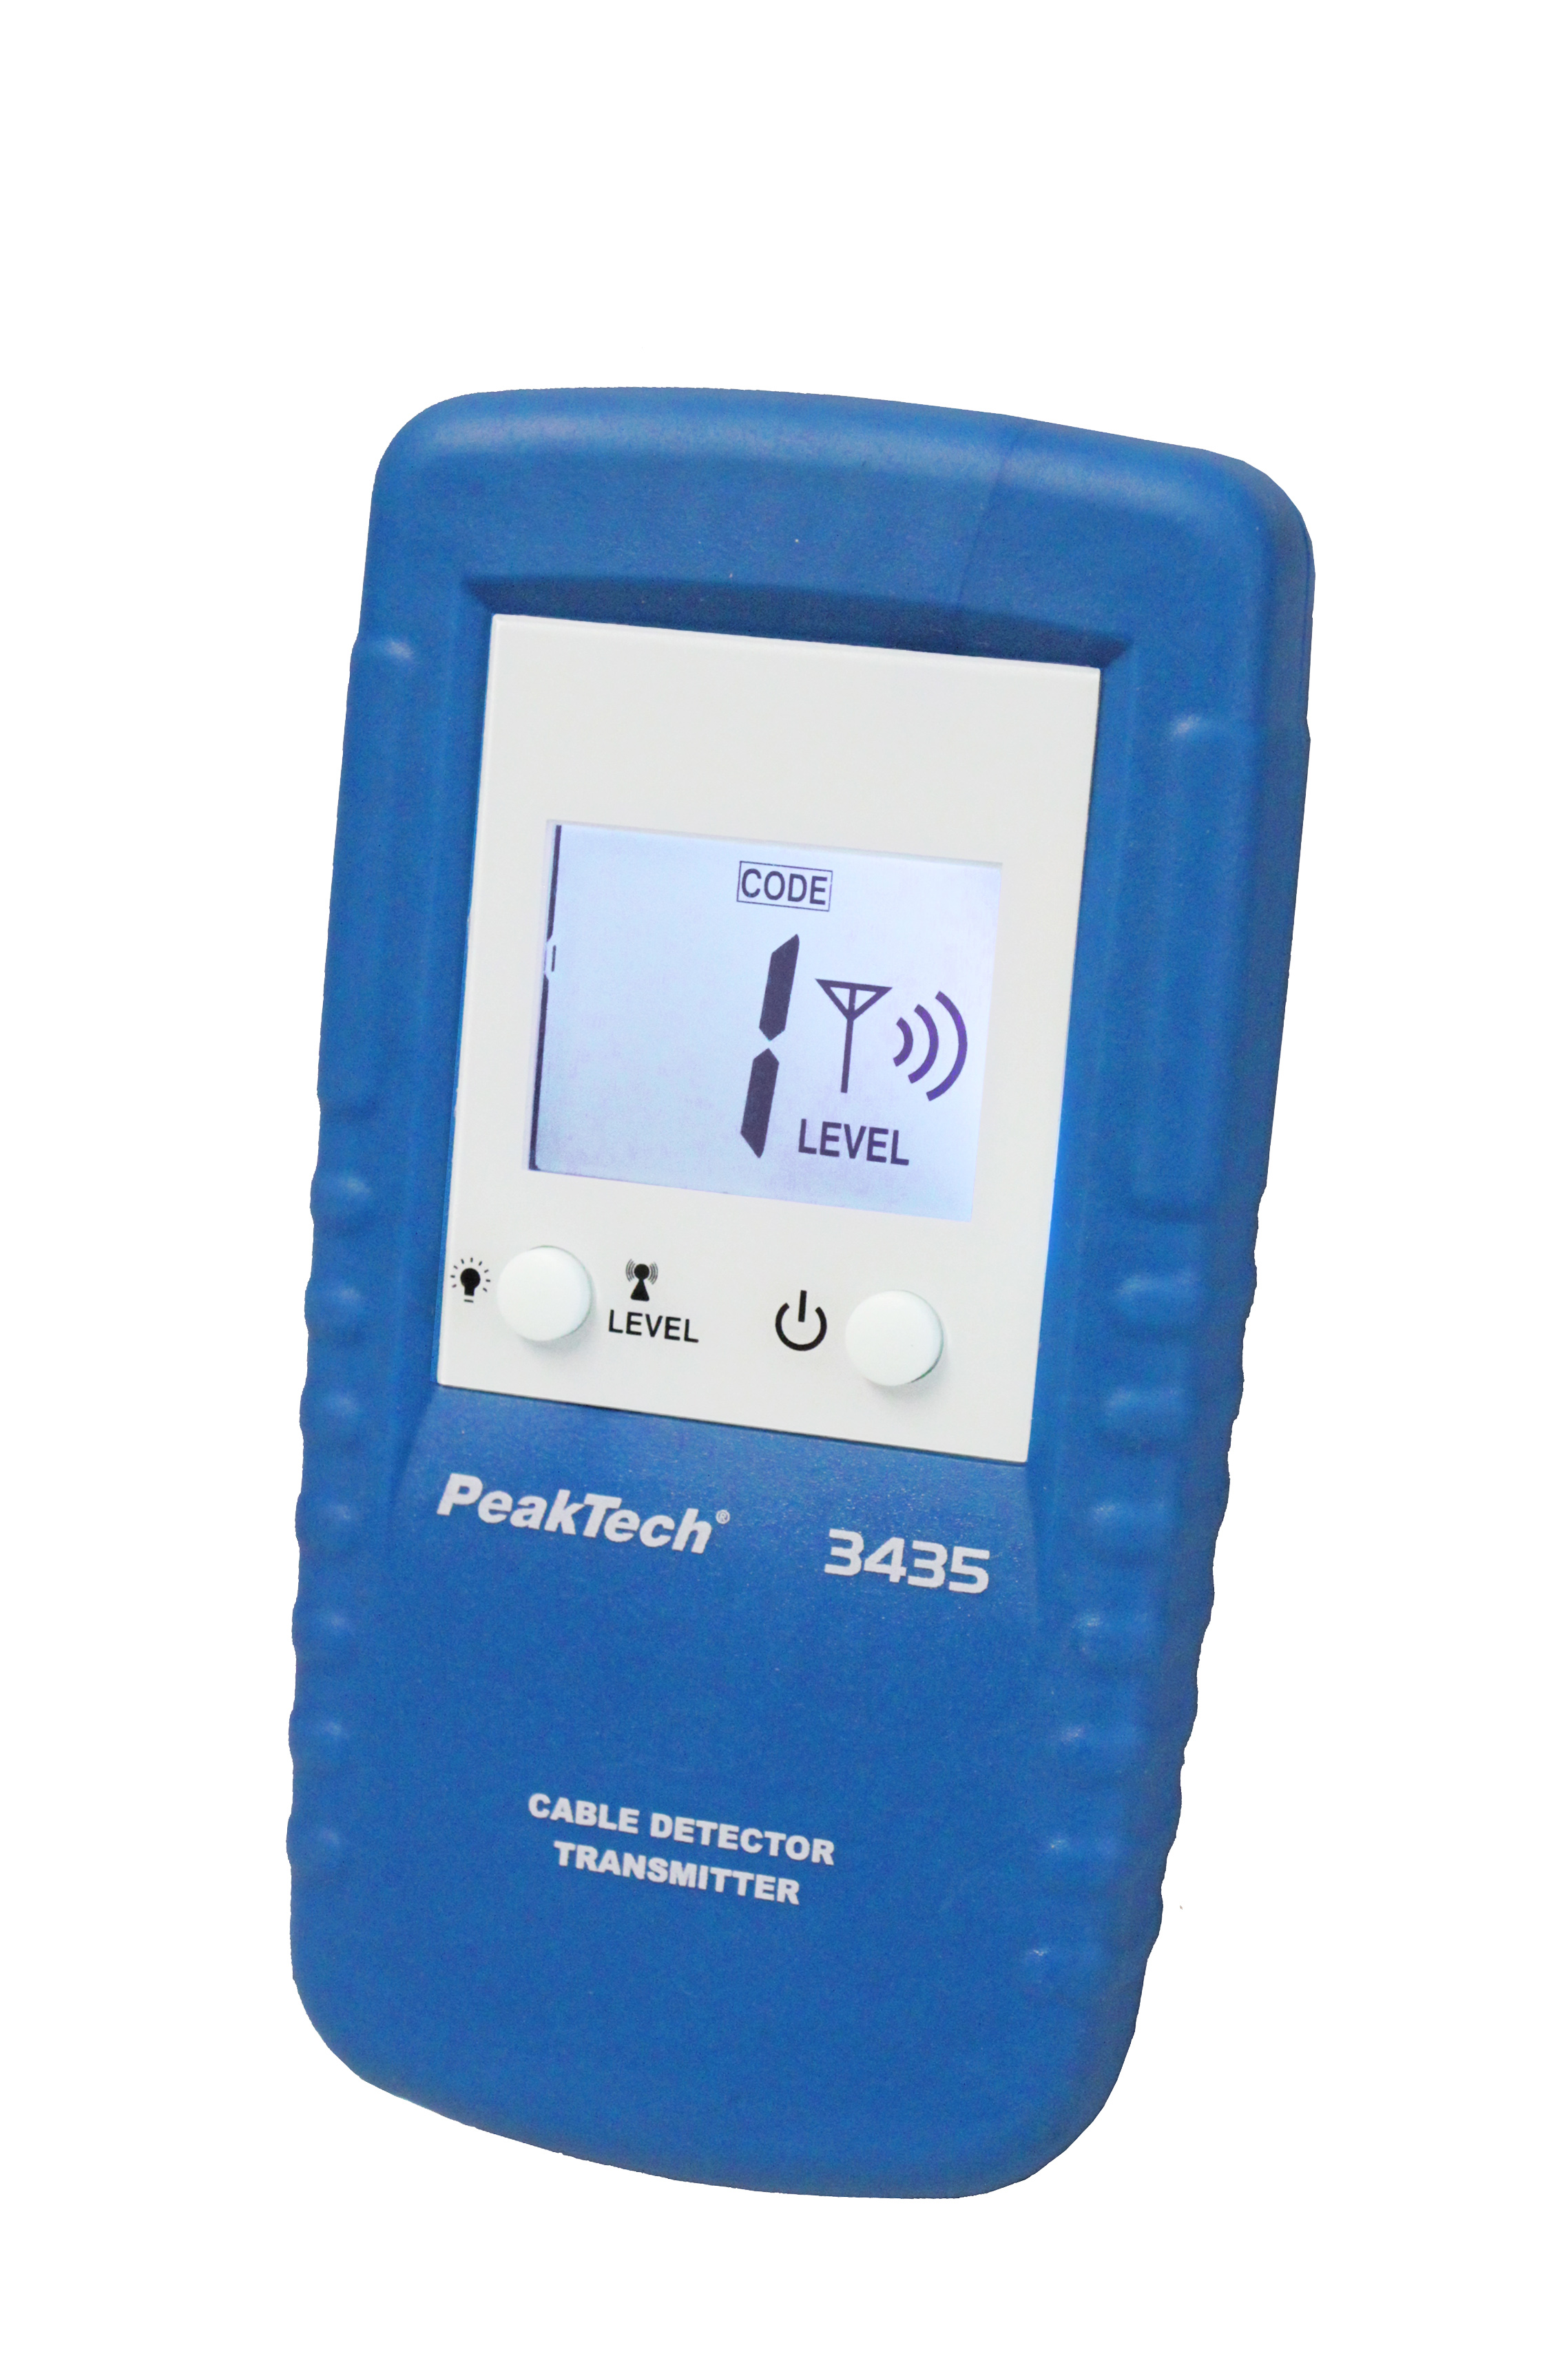 «PeakTech® P 3435 TR» additional transmitter for PeakTech 3435